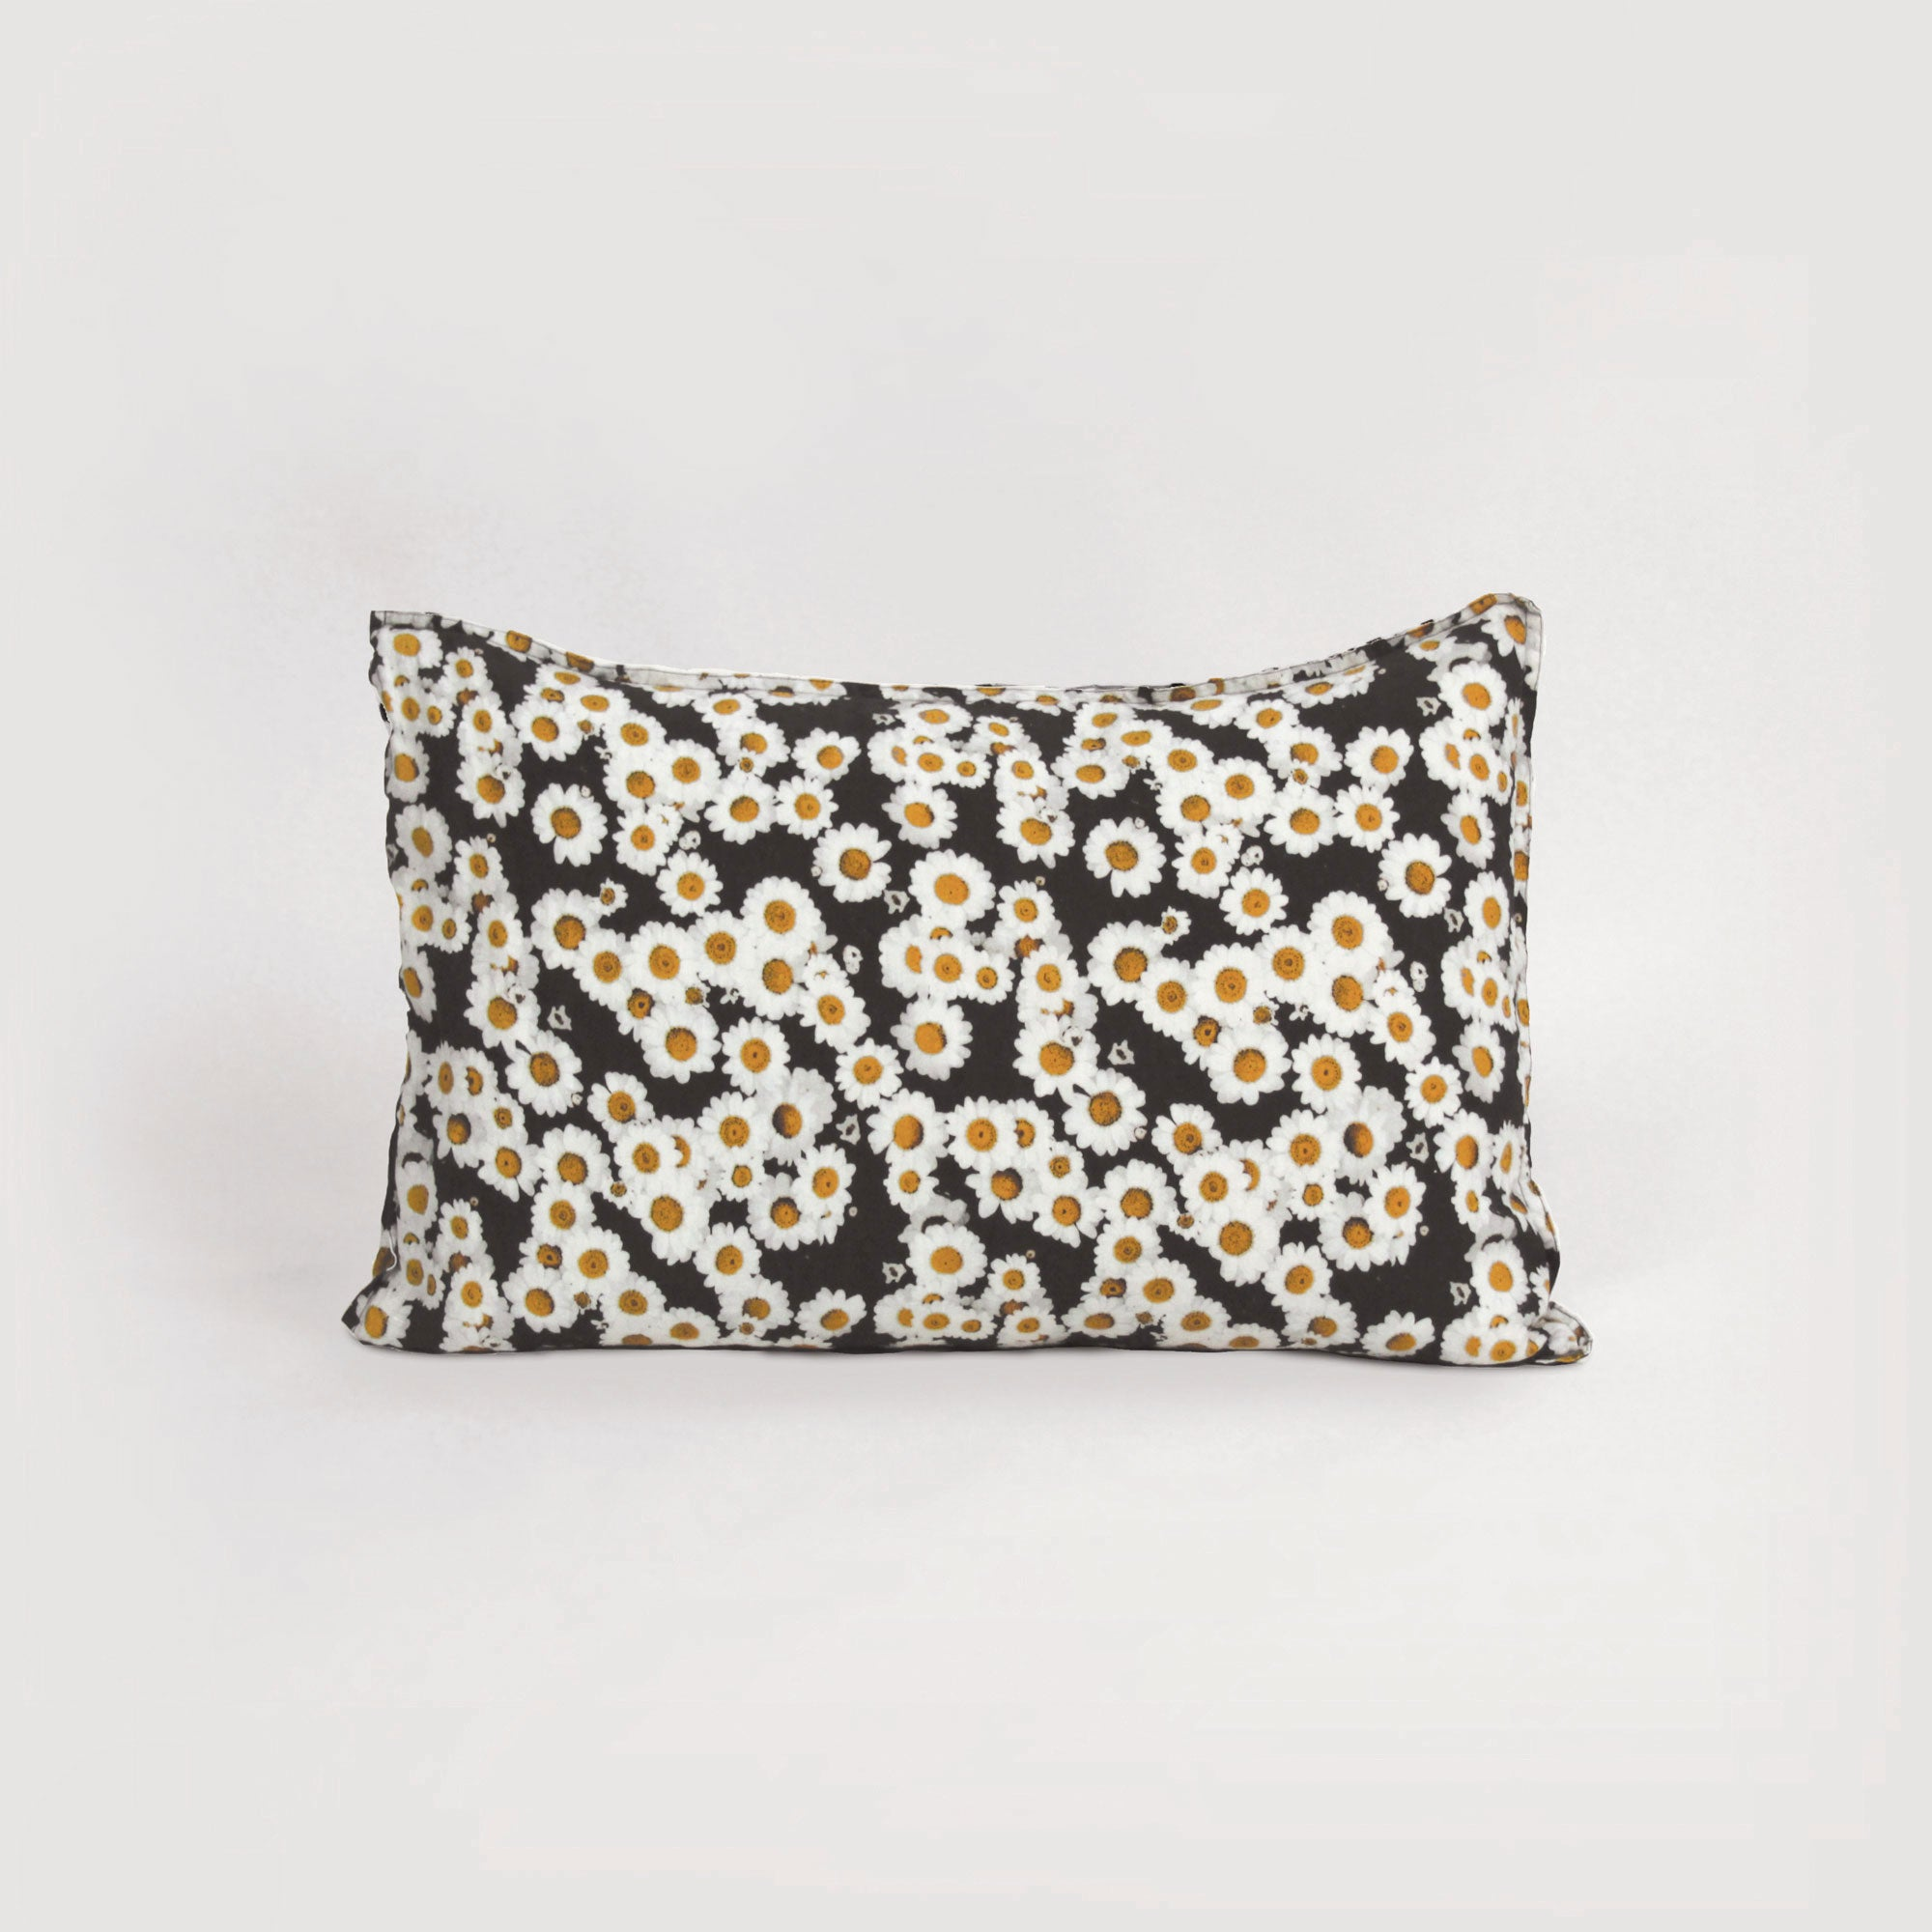 homebody nz daisy print pillowcase in 100% natural linen